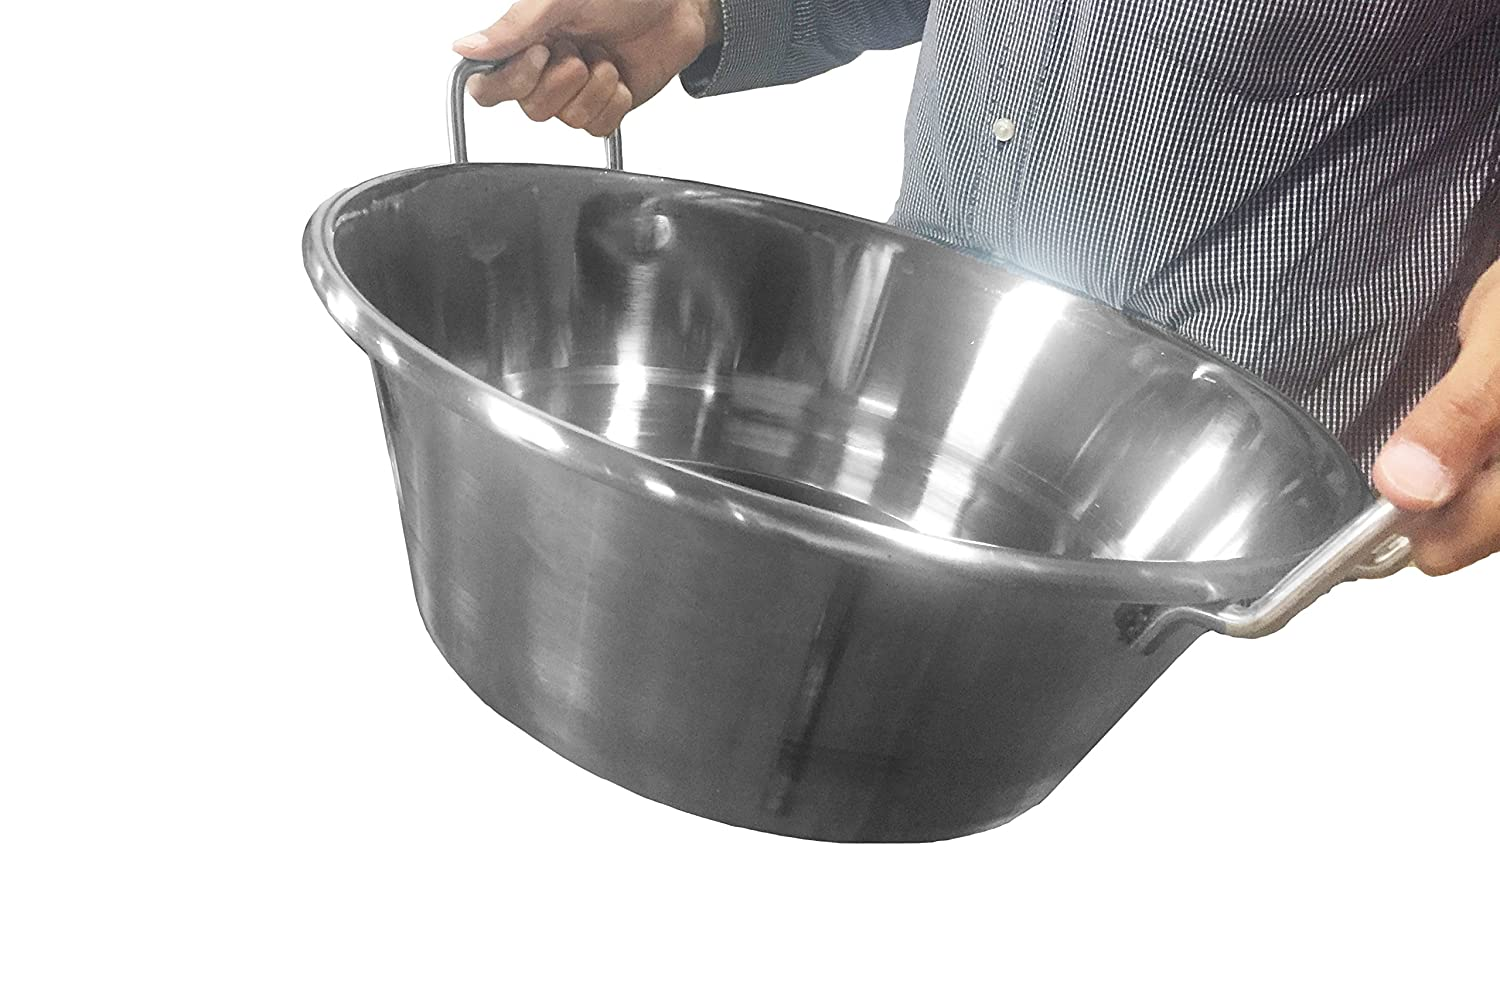 Bioexcel Cazos Para Carnitas Cooking Wok - Cazos Mexicanos Heavy Duty Stainless Steel Pot - Choose Many Sizes - This One is (Diameter 18